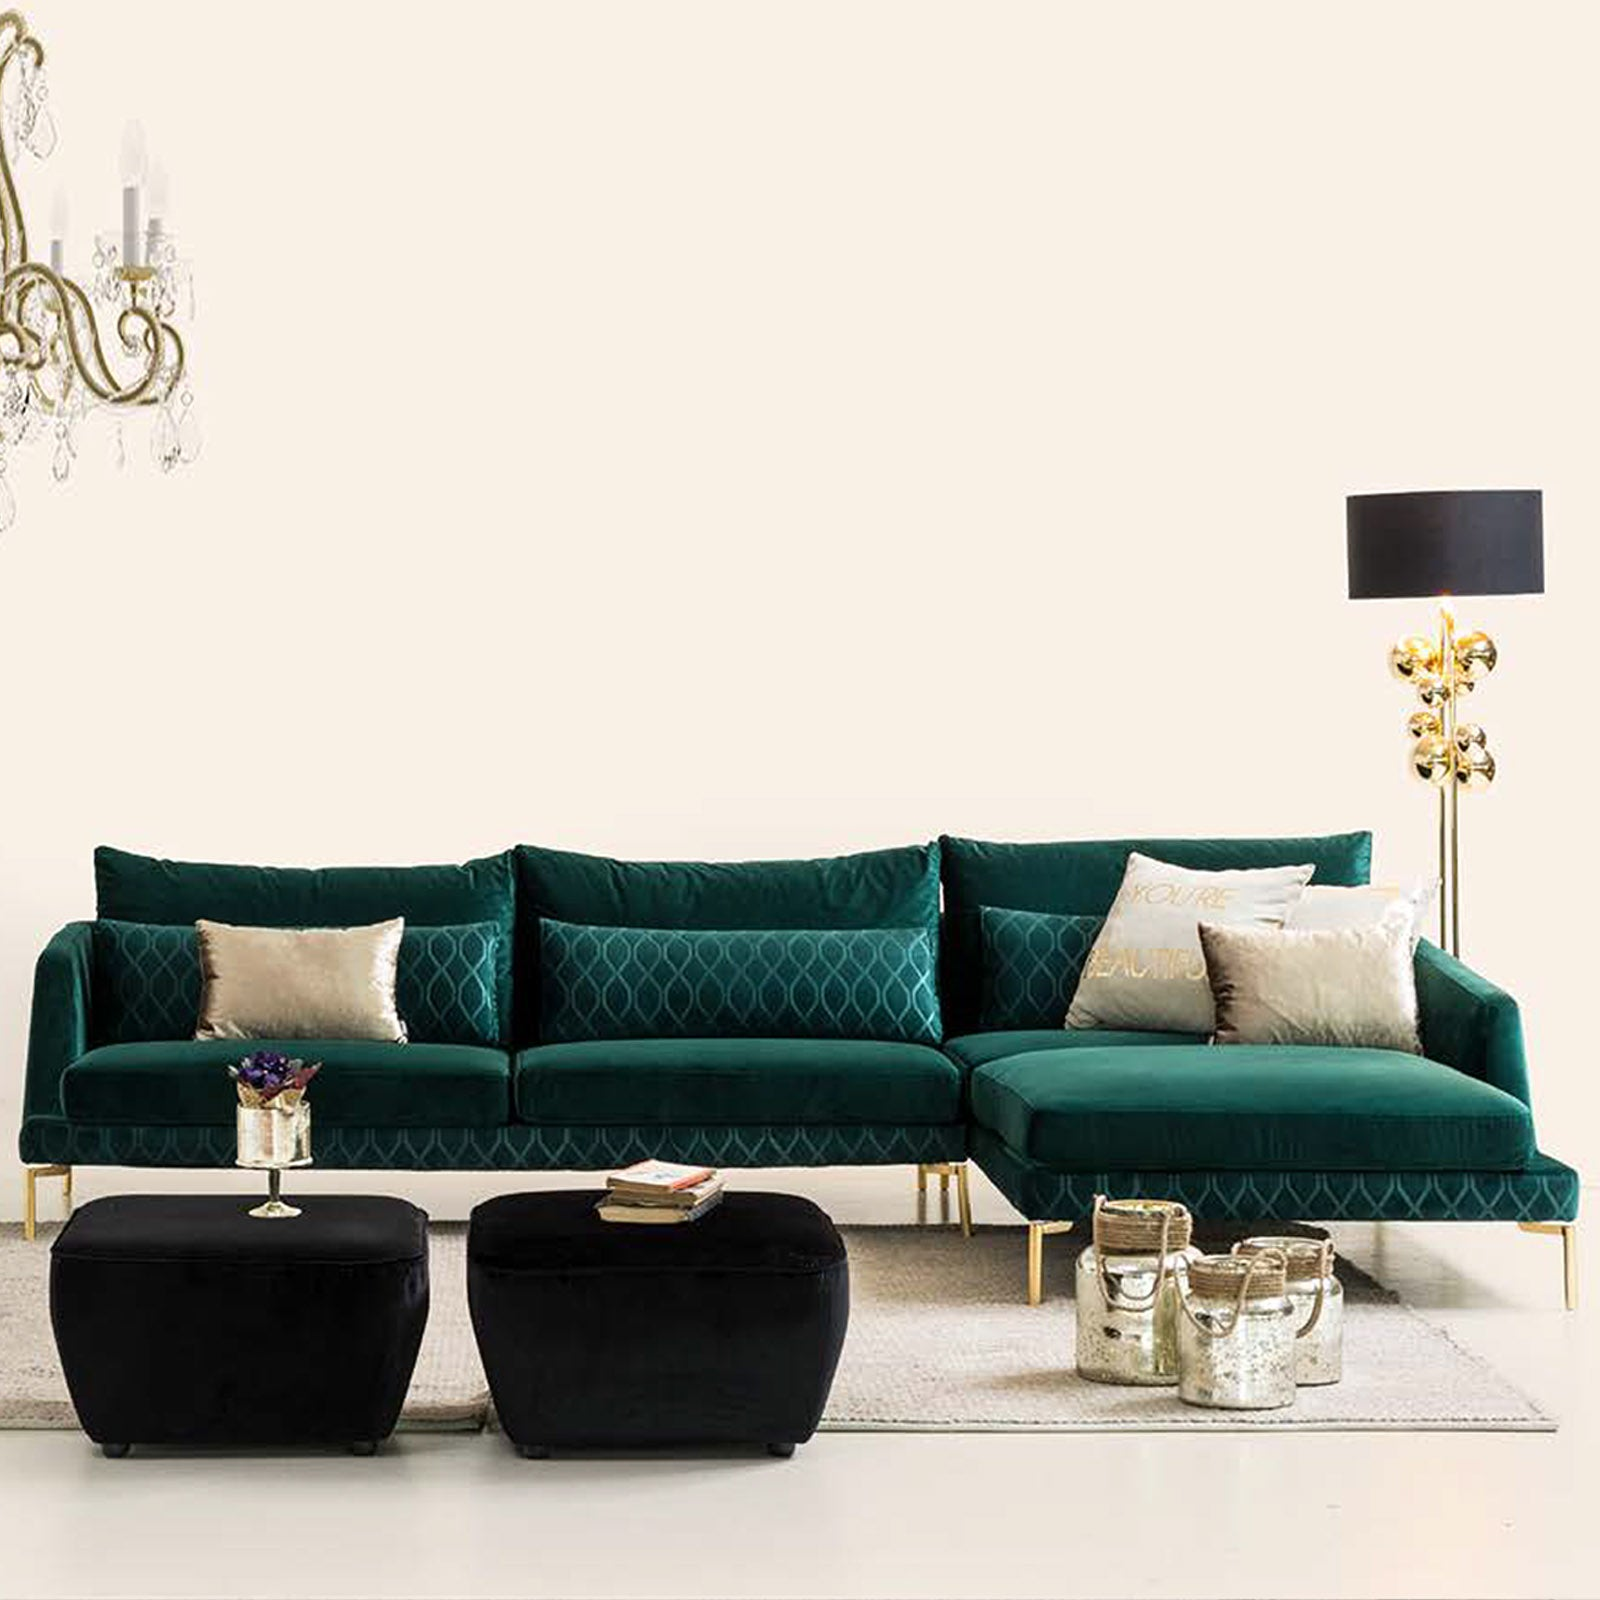 Anzio Corner  Sofa Set ANZEO50 CAPTOWN 18 -  طقم كنب زاوية من أنزيو - Shop Online Furniture and Home Decor Store in Dubai, UAE at ebarza